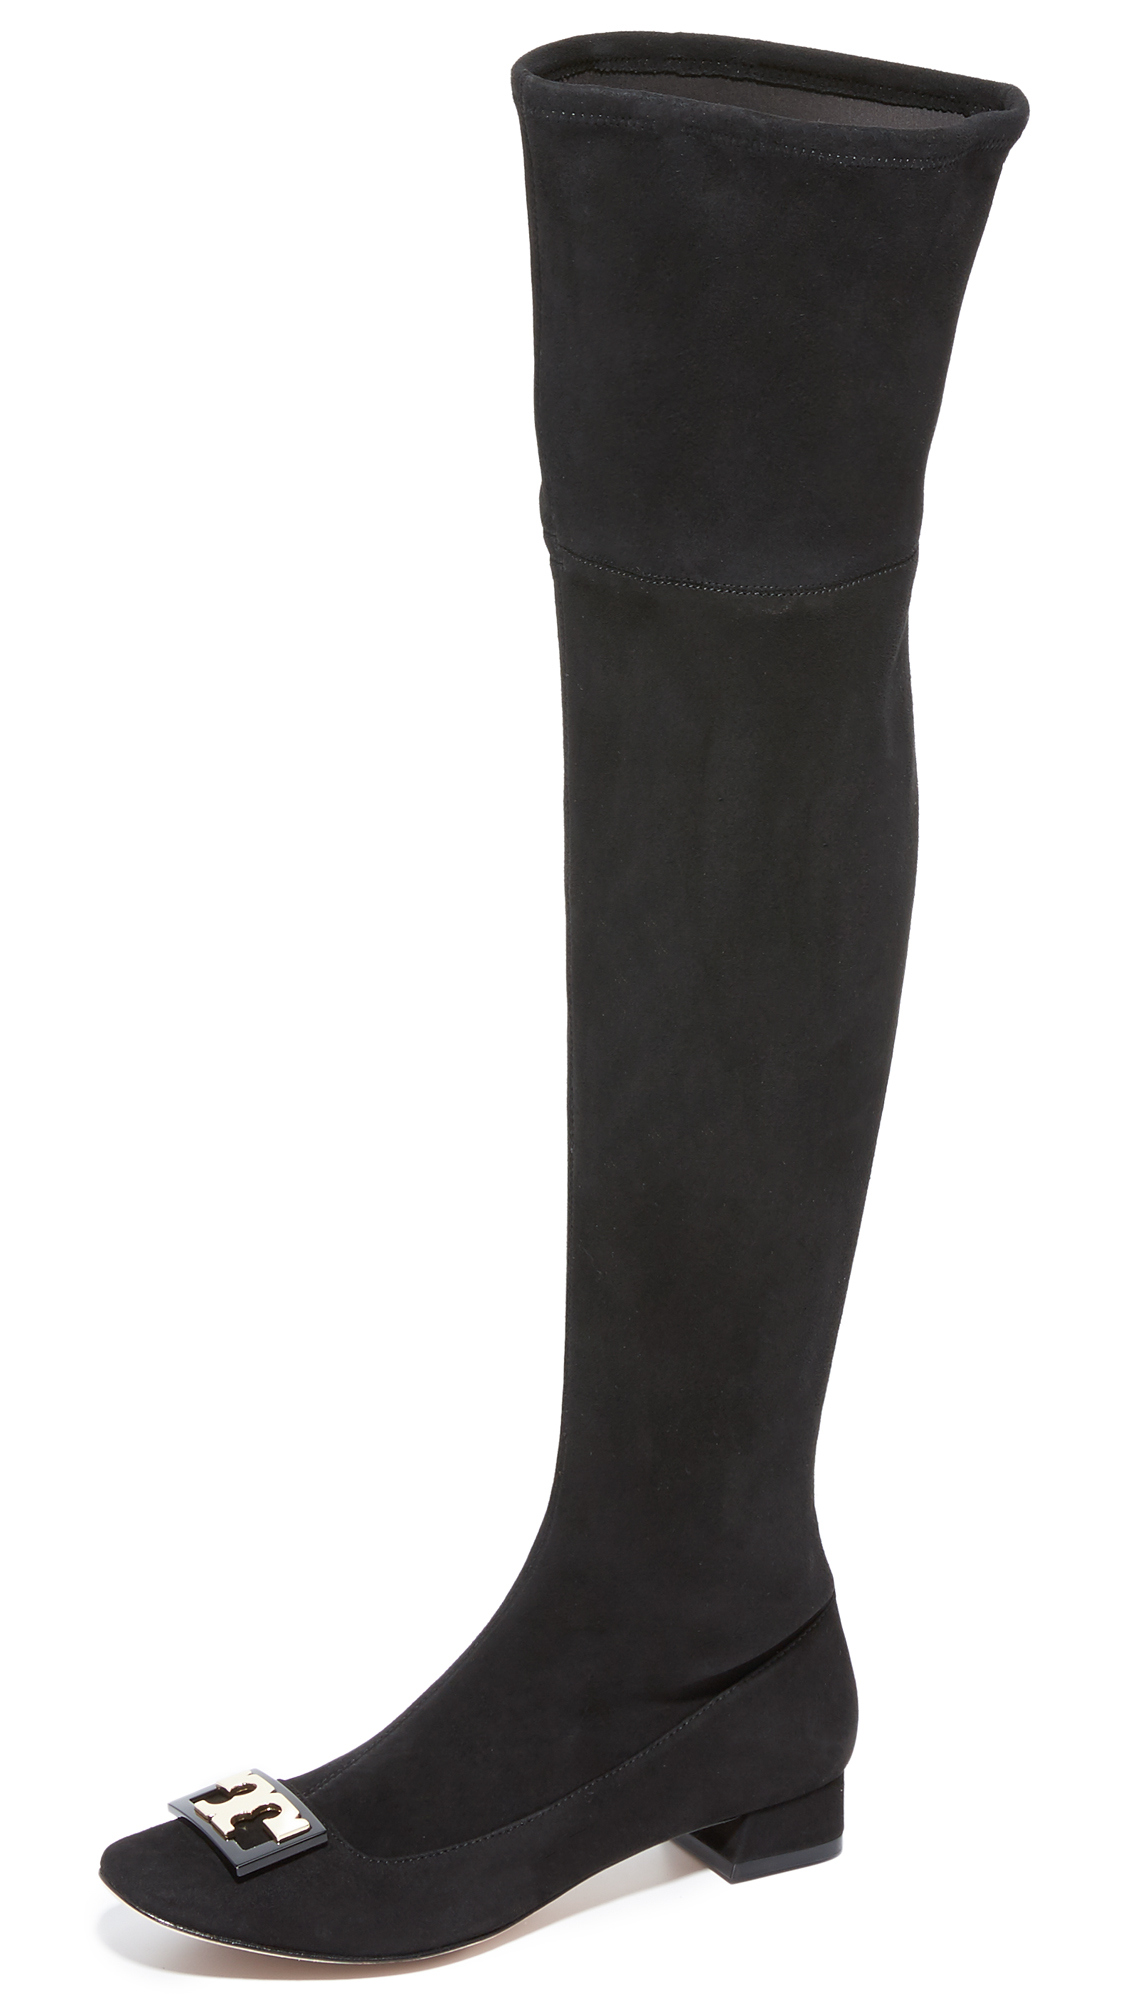 Sophisticated Tory Burch over the knee boots composed of panels of luxe, stretch suede. Logo accent at the toe and hidden zip at the ankle. Covered heel and leather sole. Leather: Goatskin. Imported, China. This item